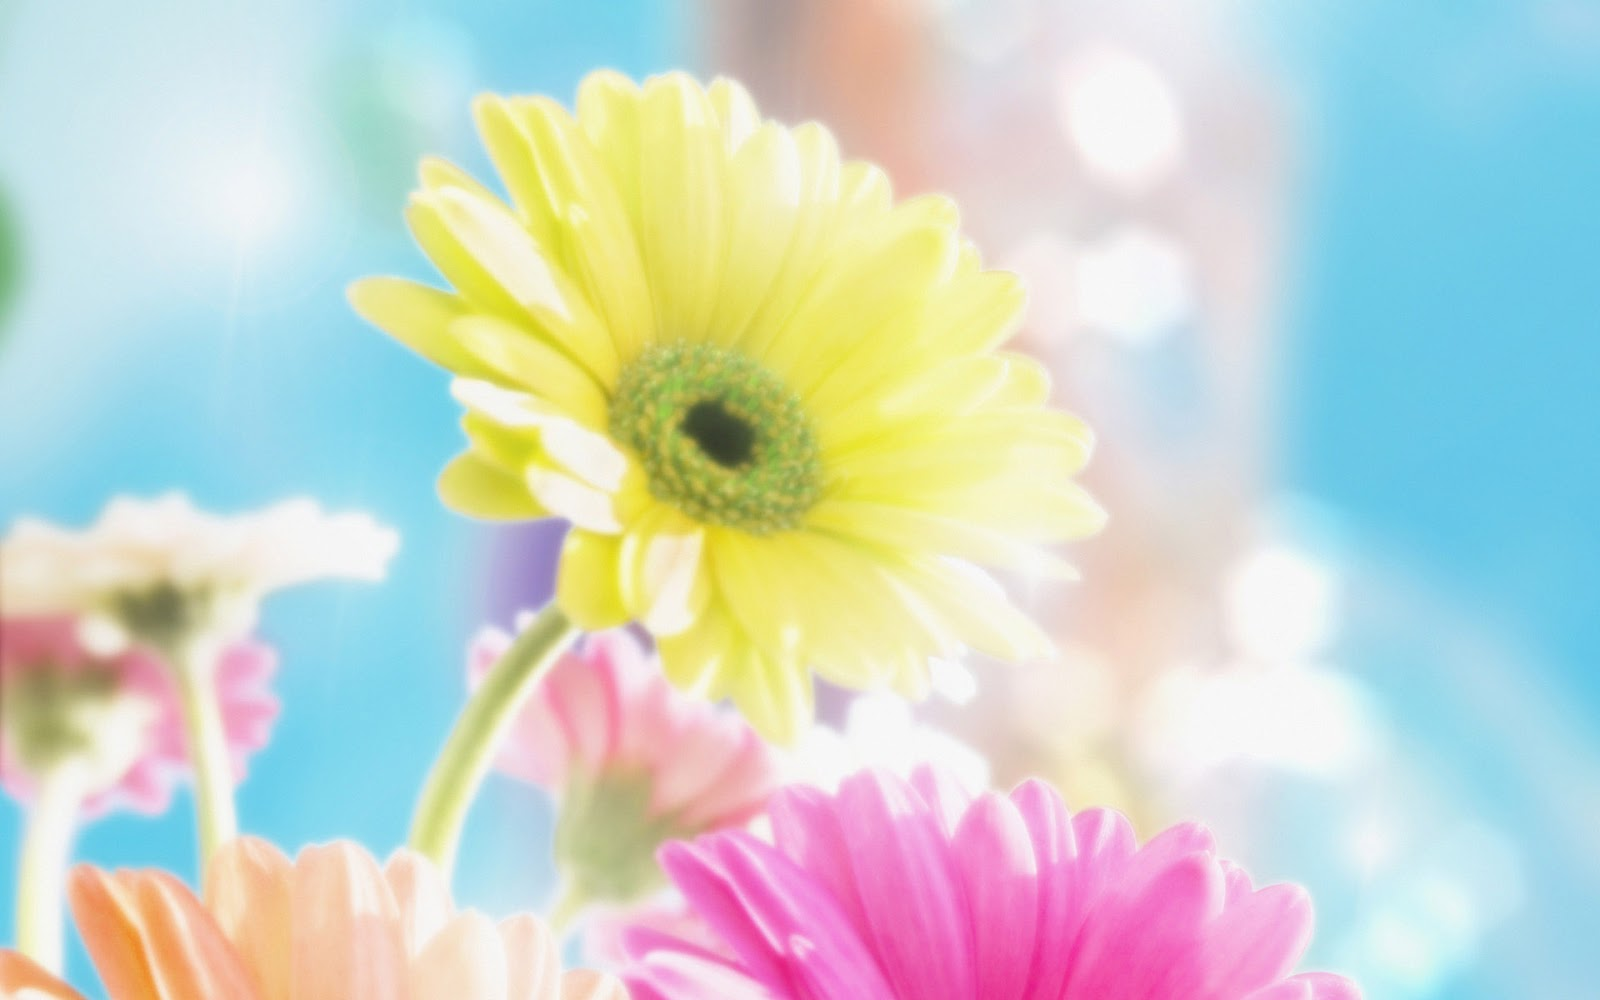 flowers for flower lovers.: Flowers background desktop ...